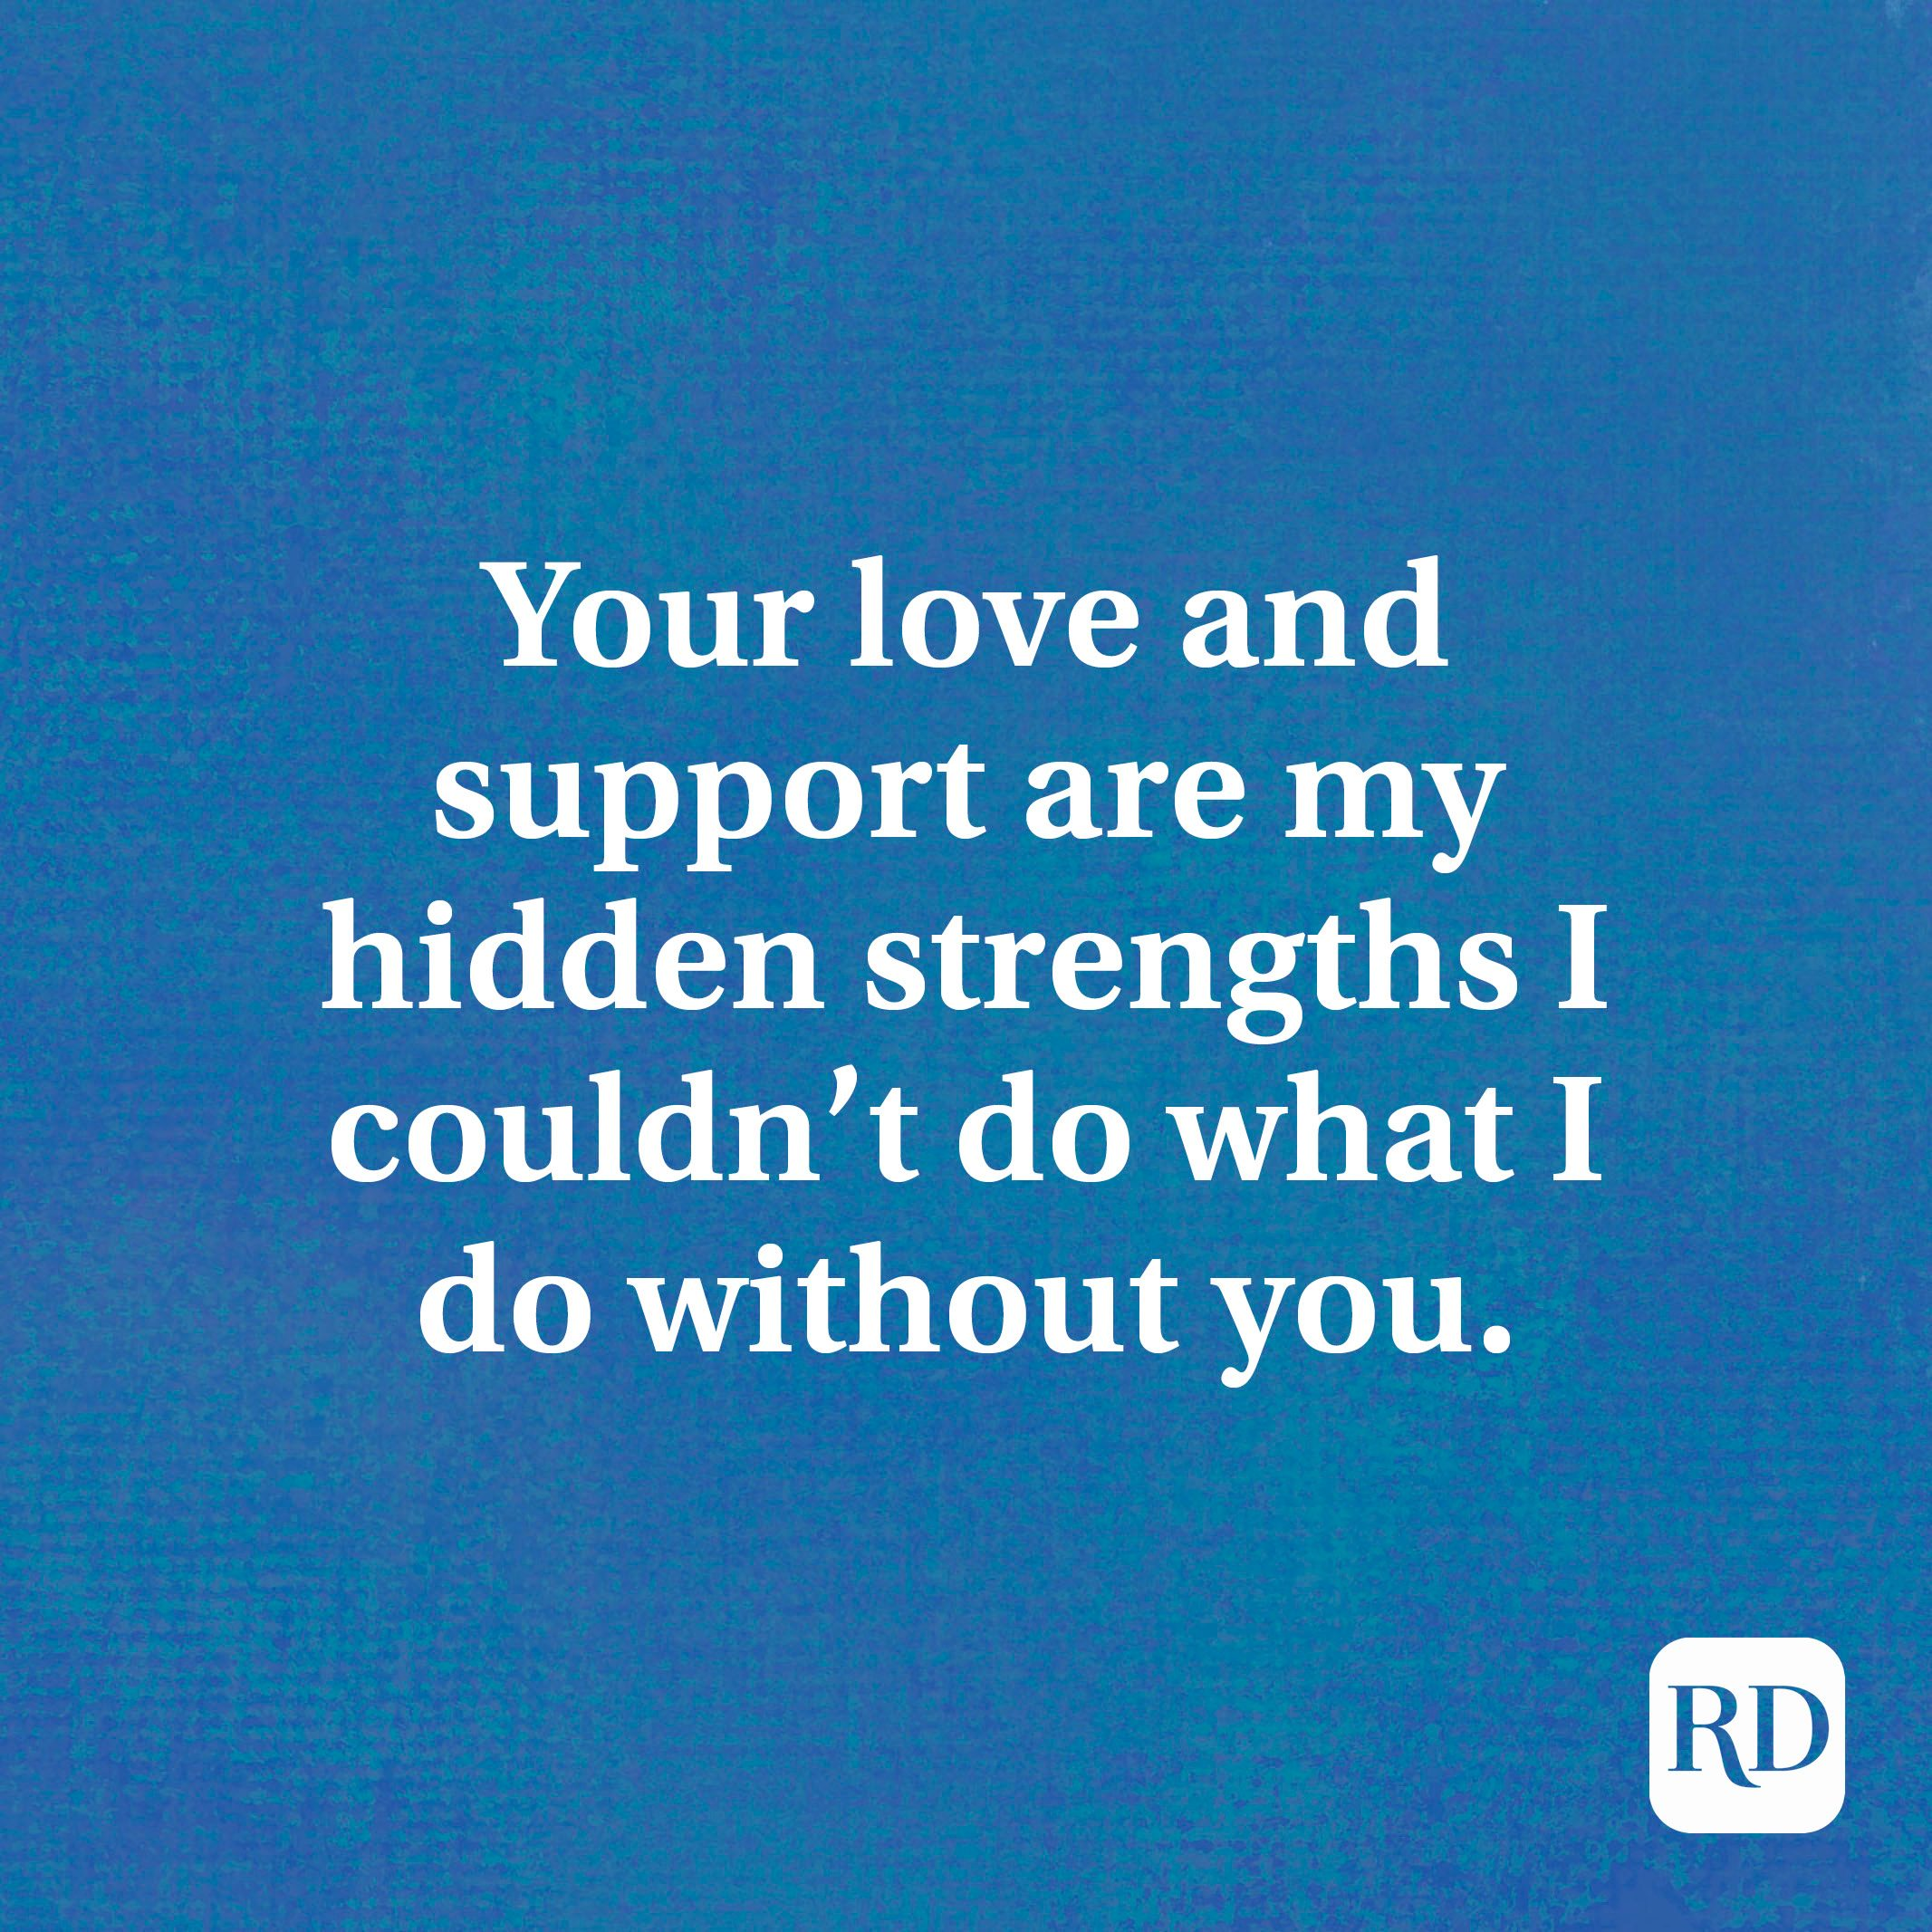 Your love and support are my hidden strengths I couldn't do what I do without you.